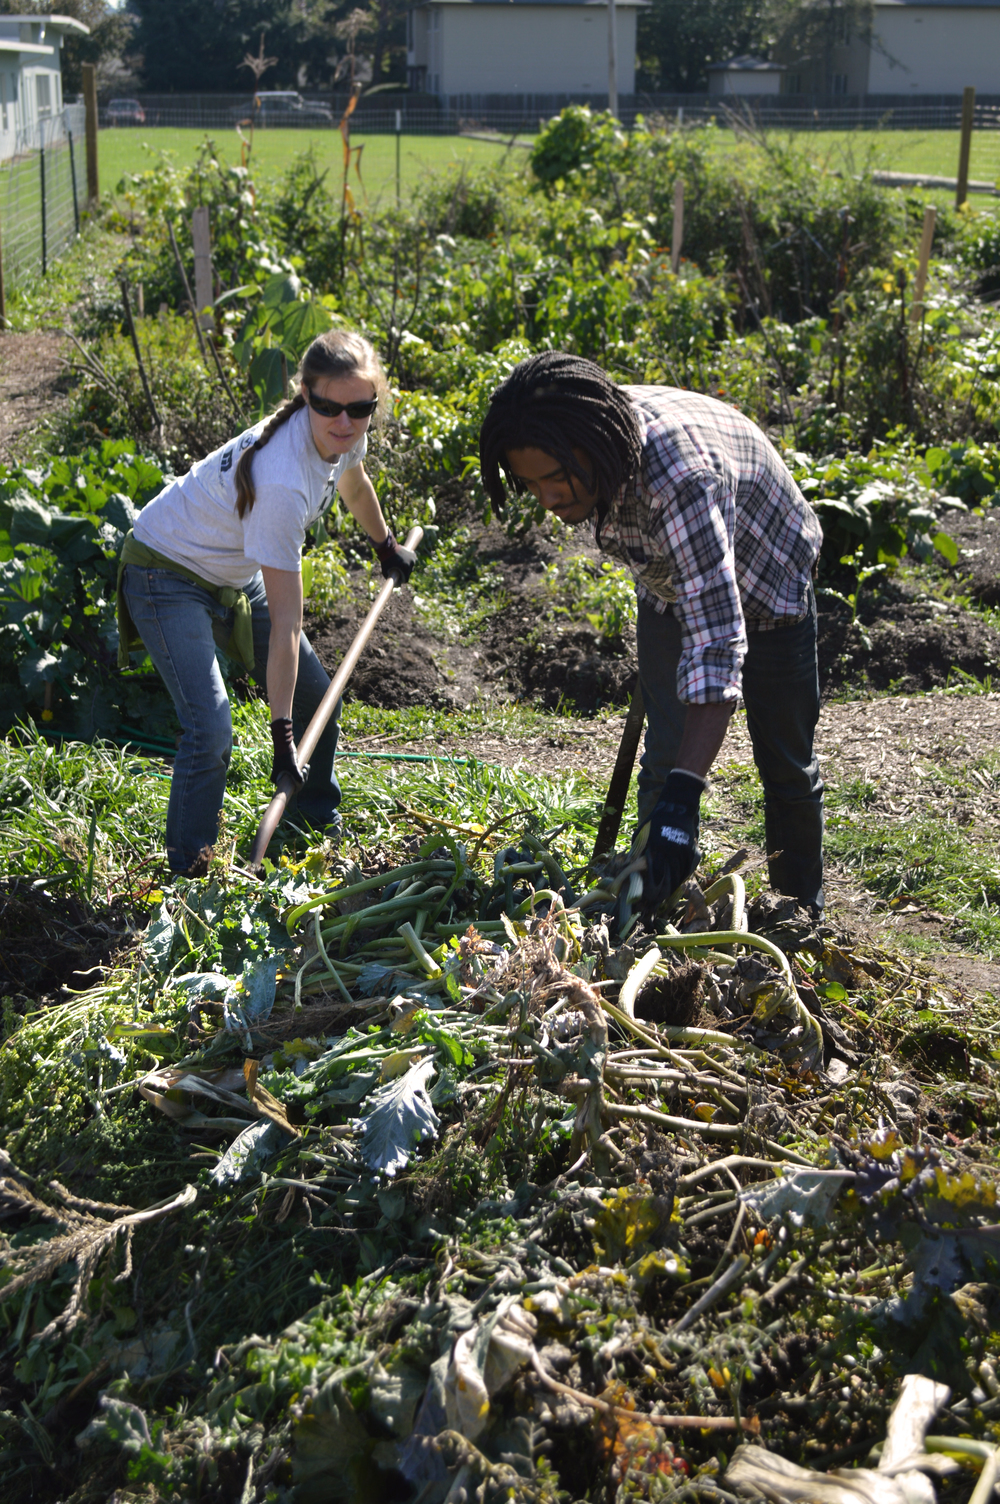 Caitlin and Axcelle volunteering at the Outgrowing Hunger garden